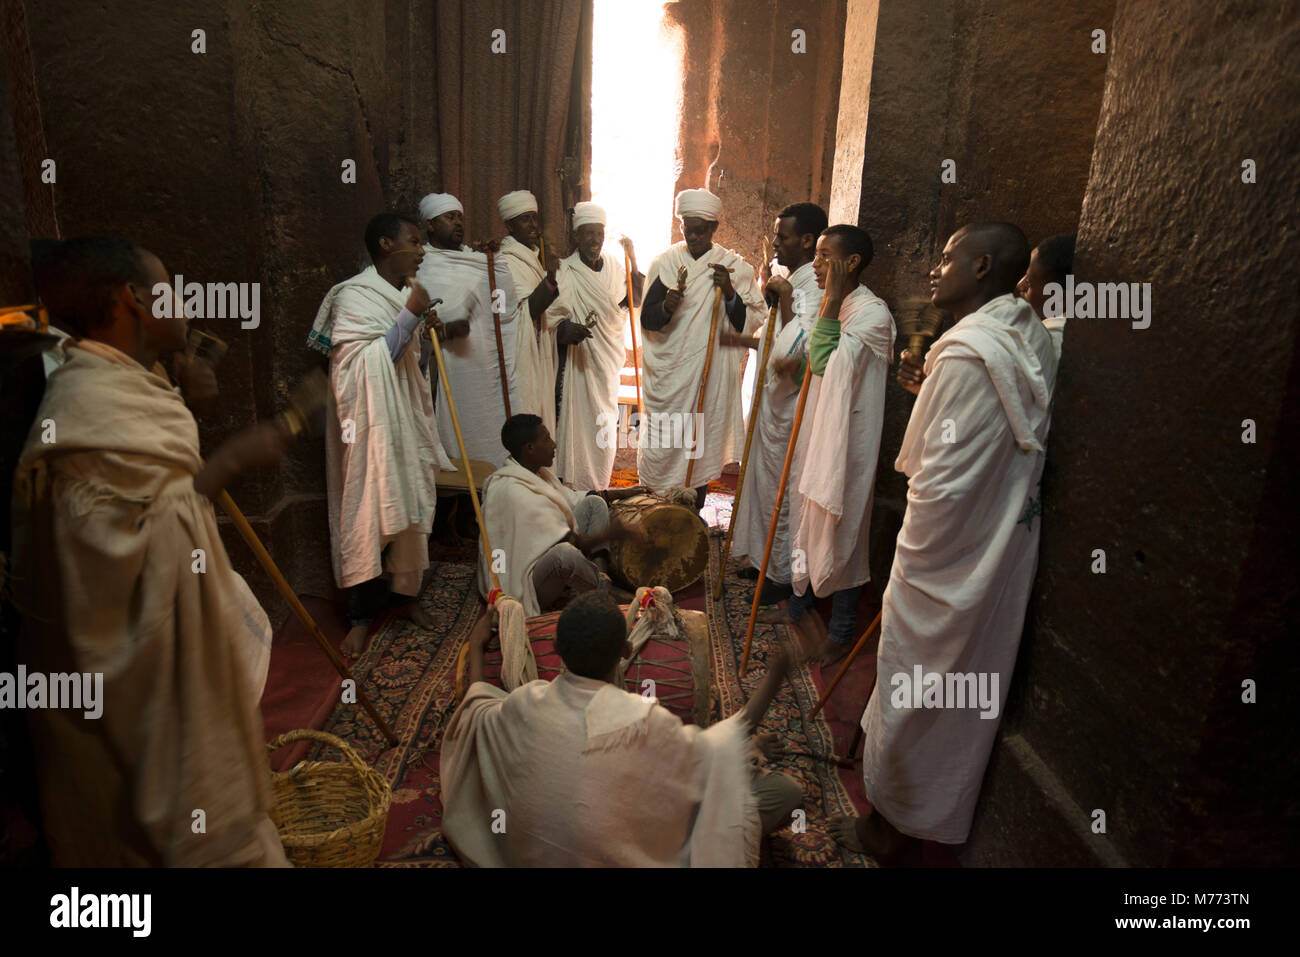 White Robes High Resolution Stock Photography And Images Alamy